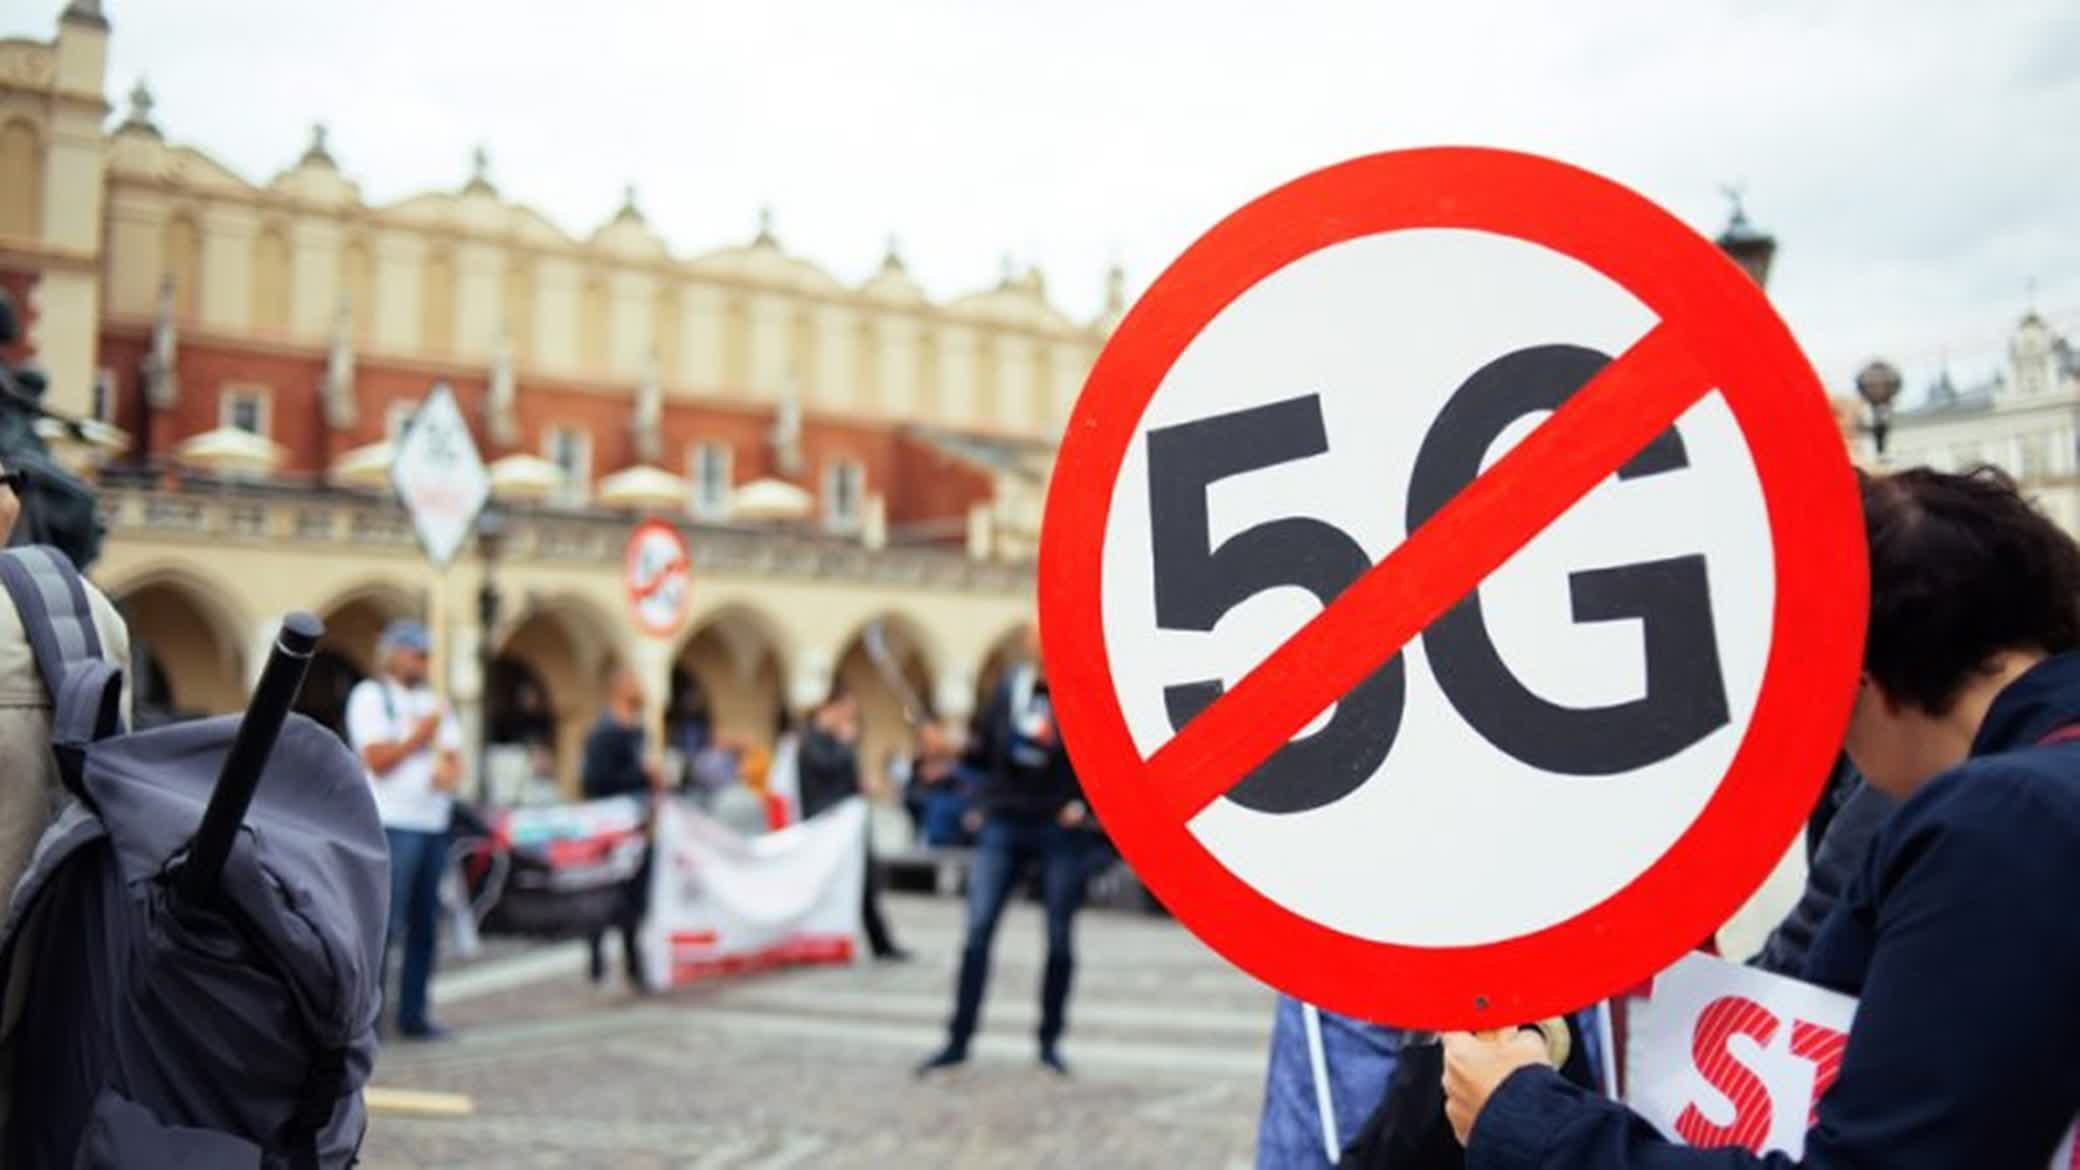 There has been some public resistance to 5G networks in Europe.